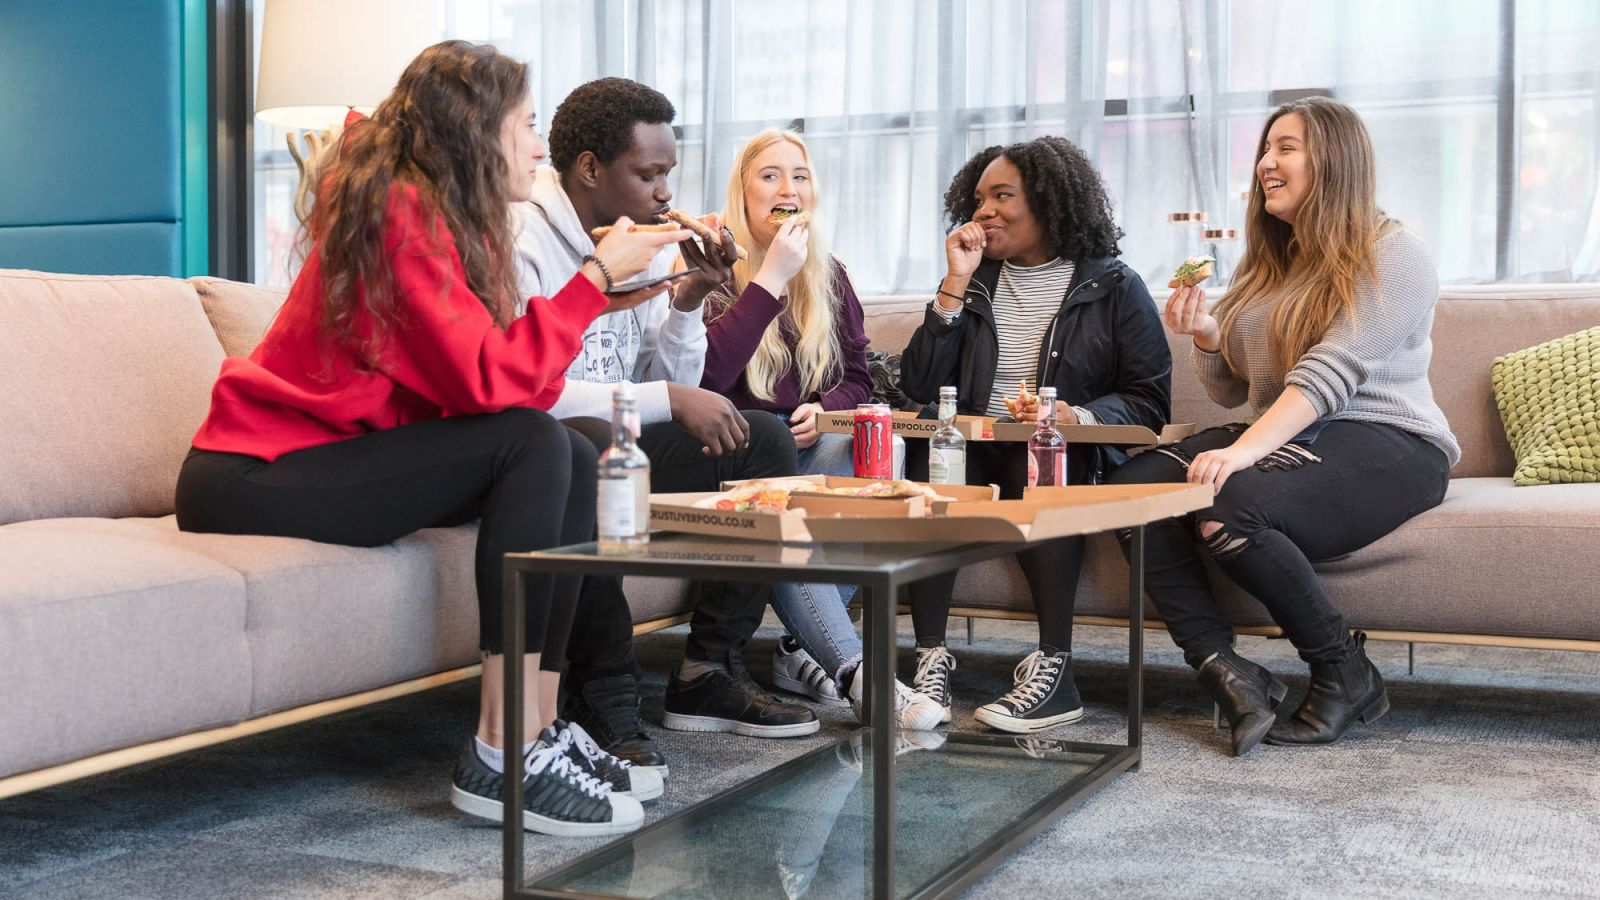 Students Eating Pizza in IconInc Mega Lounge. Student Accommodation in London